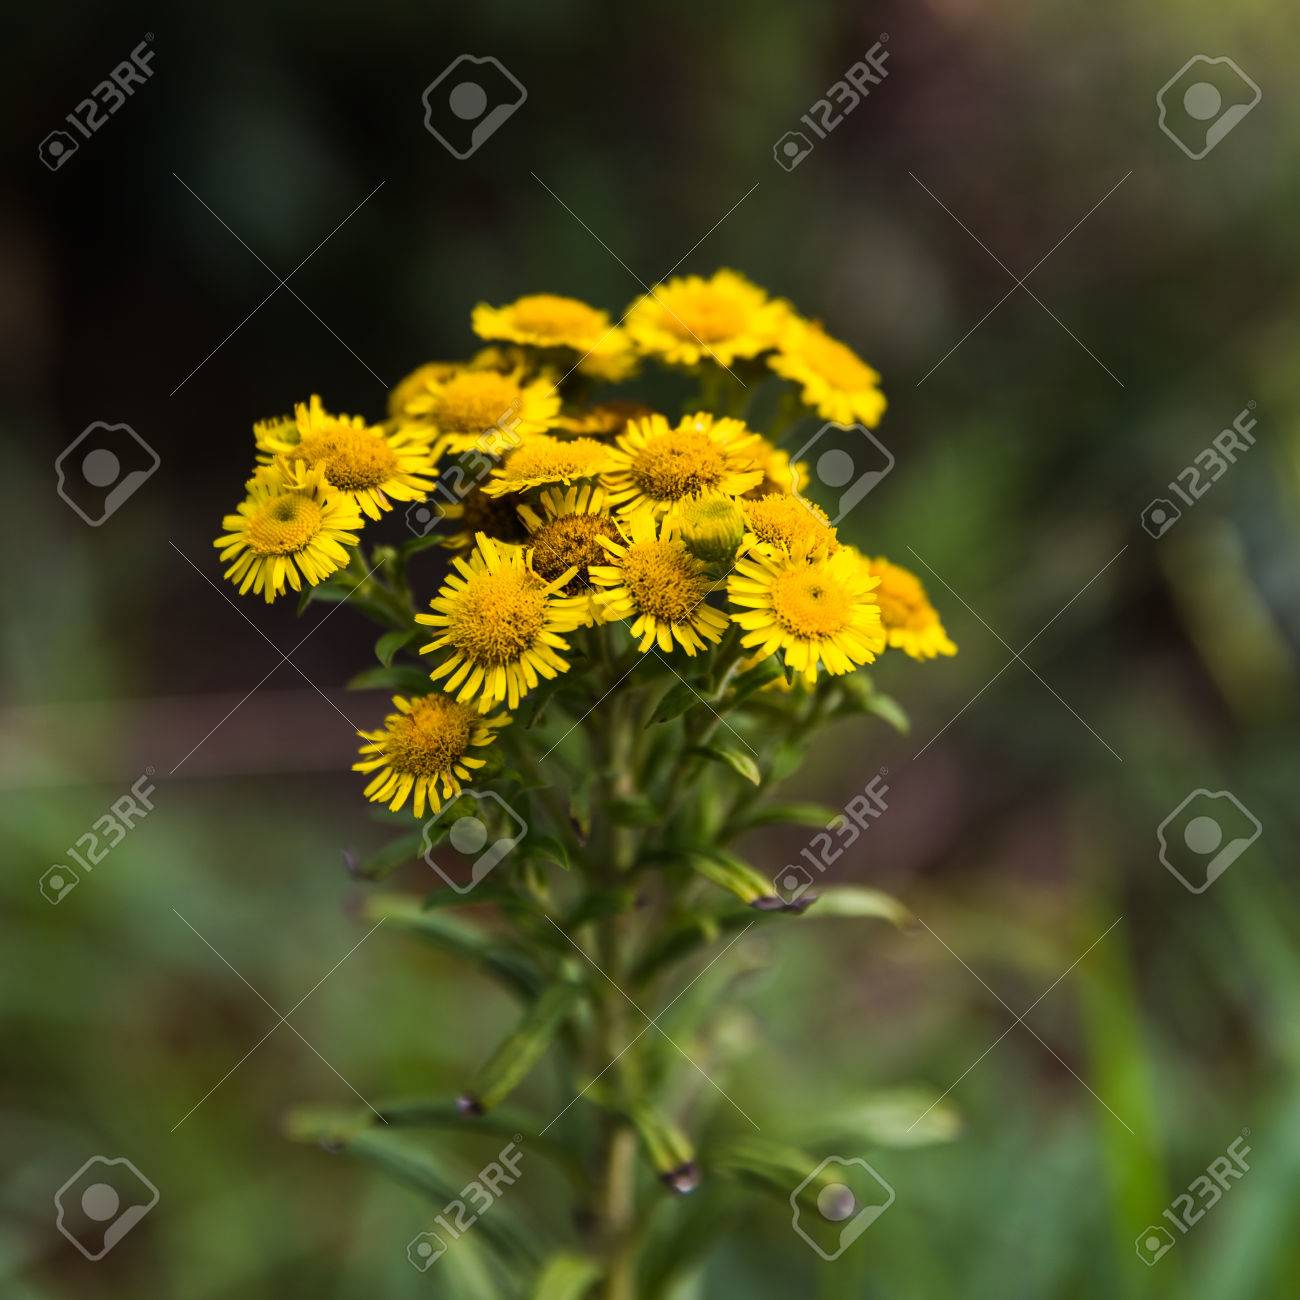 Geliebte Chrysanthemum INDICUM Stock Photo, Picture And Royalty Free Image #BT_41